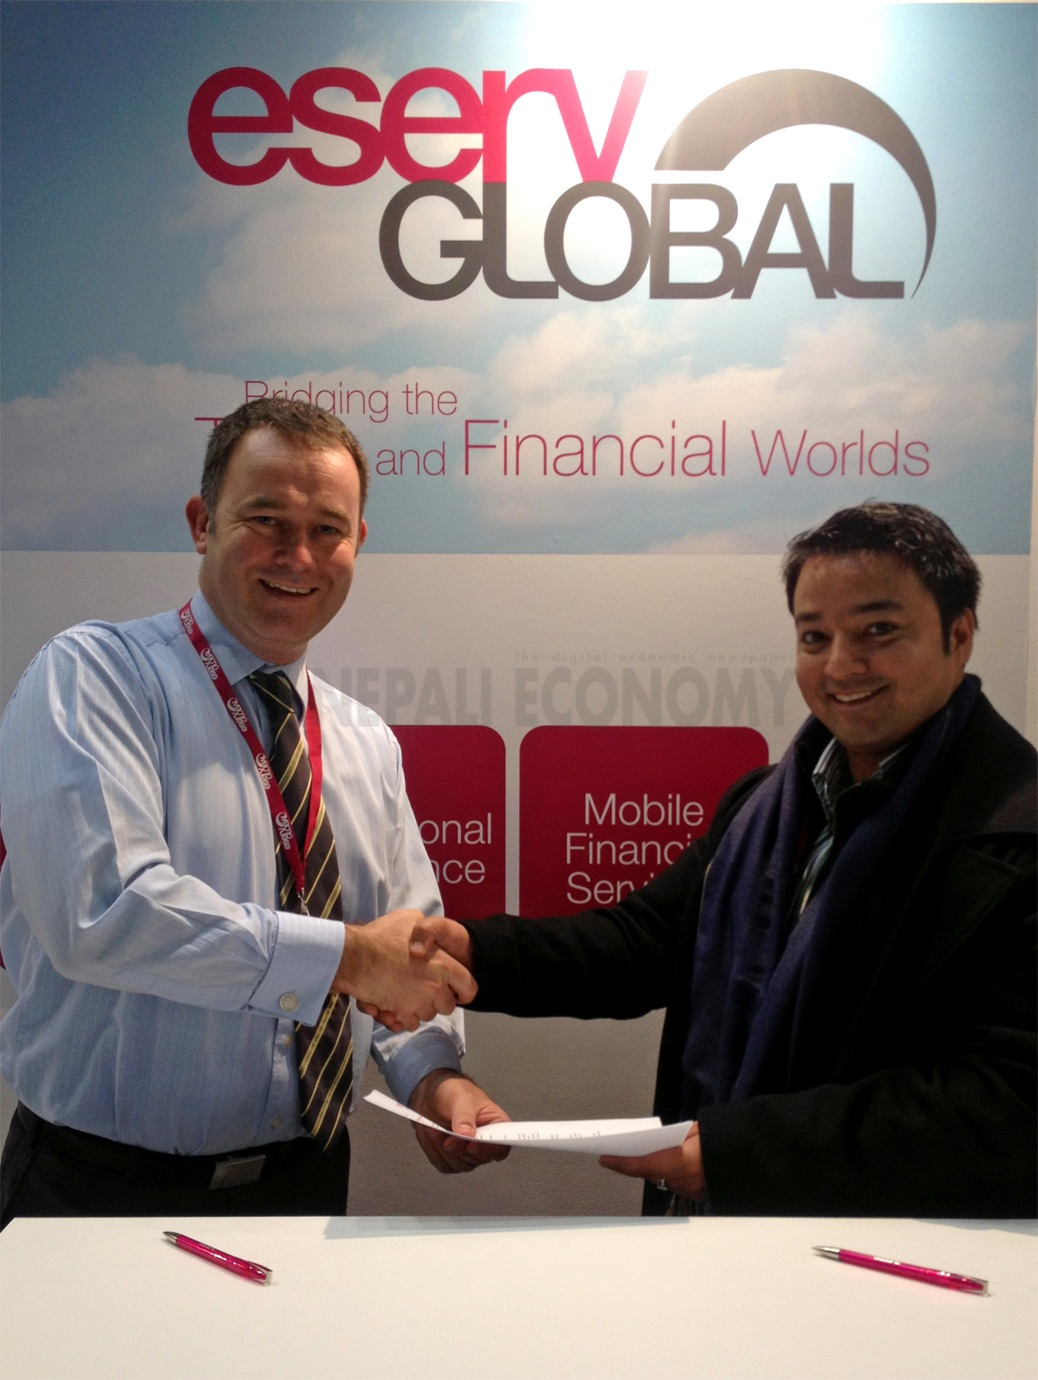 eServGlobal and MNepal to Offer Mobile Financial Service Solution in Nepal